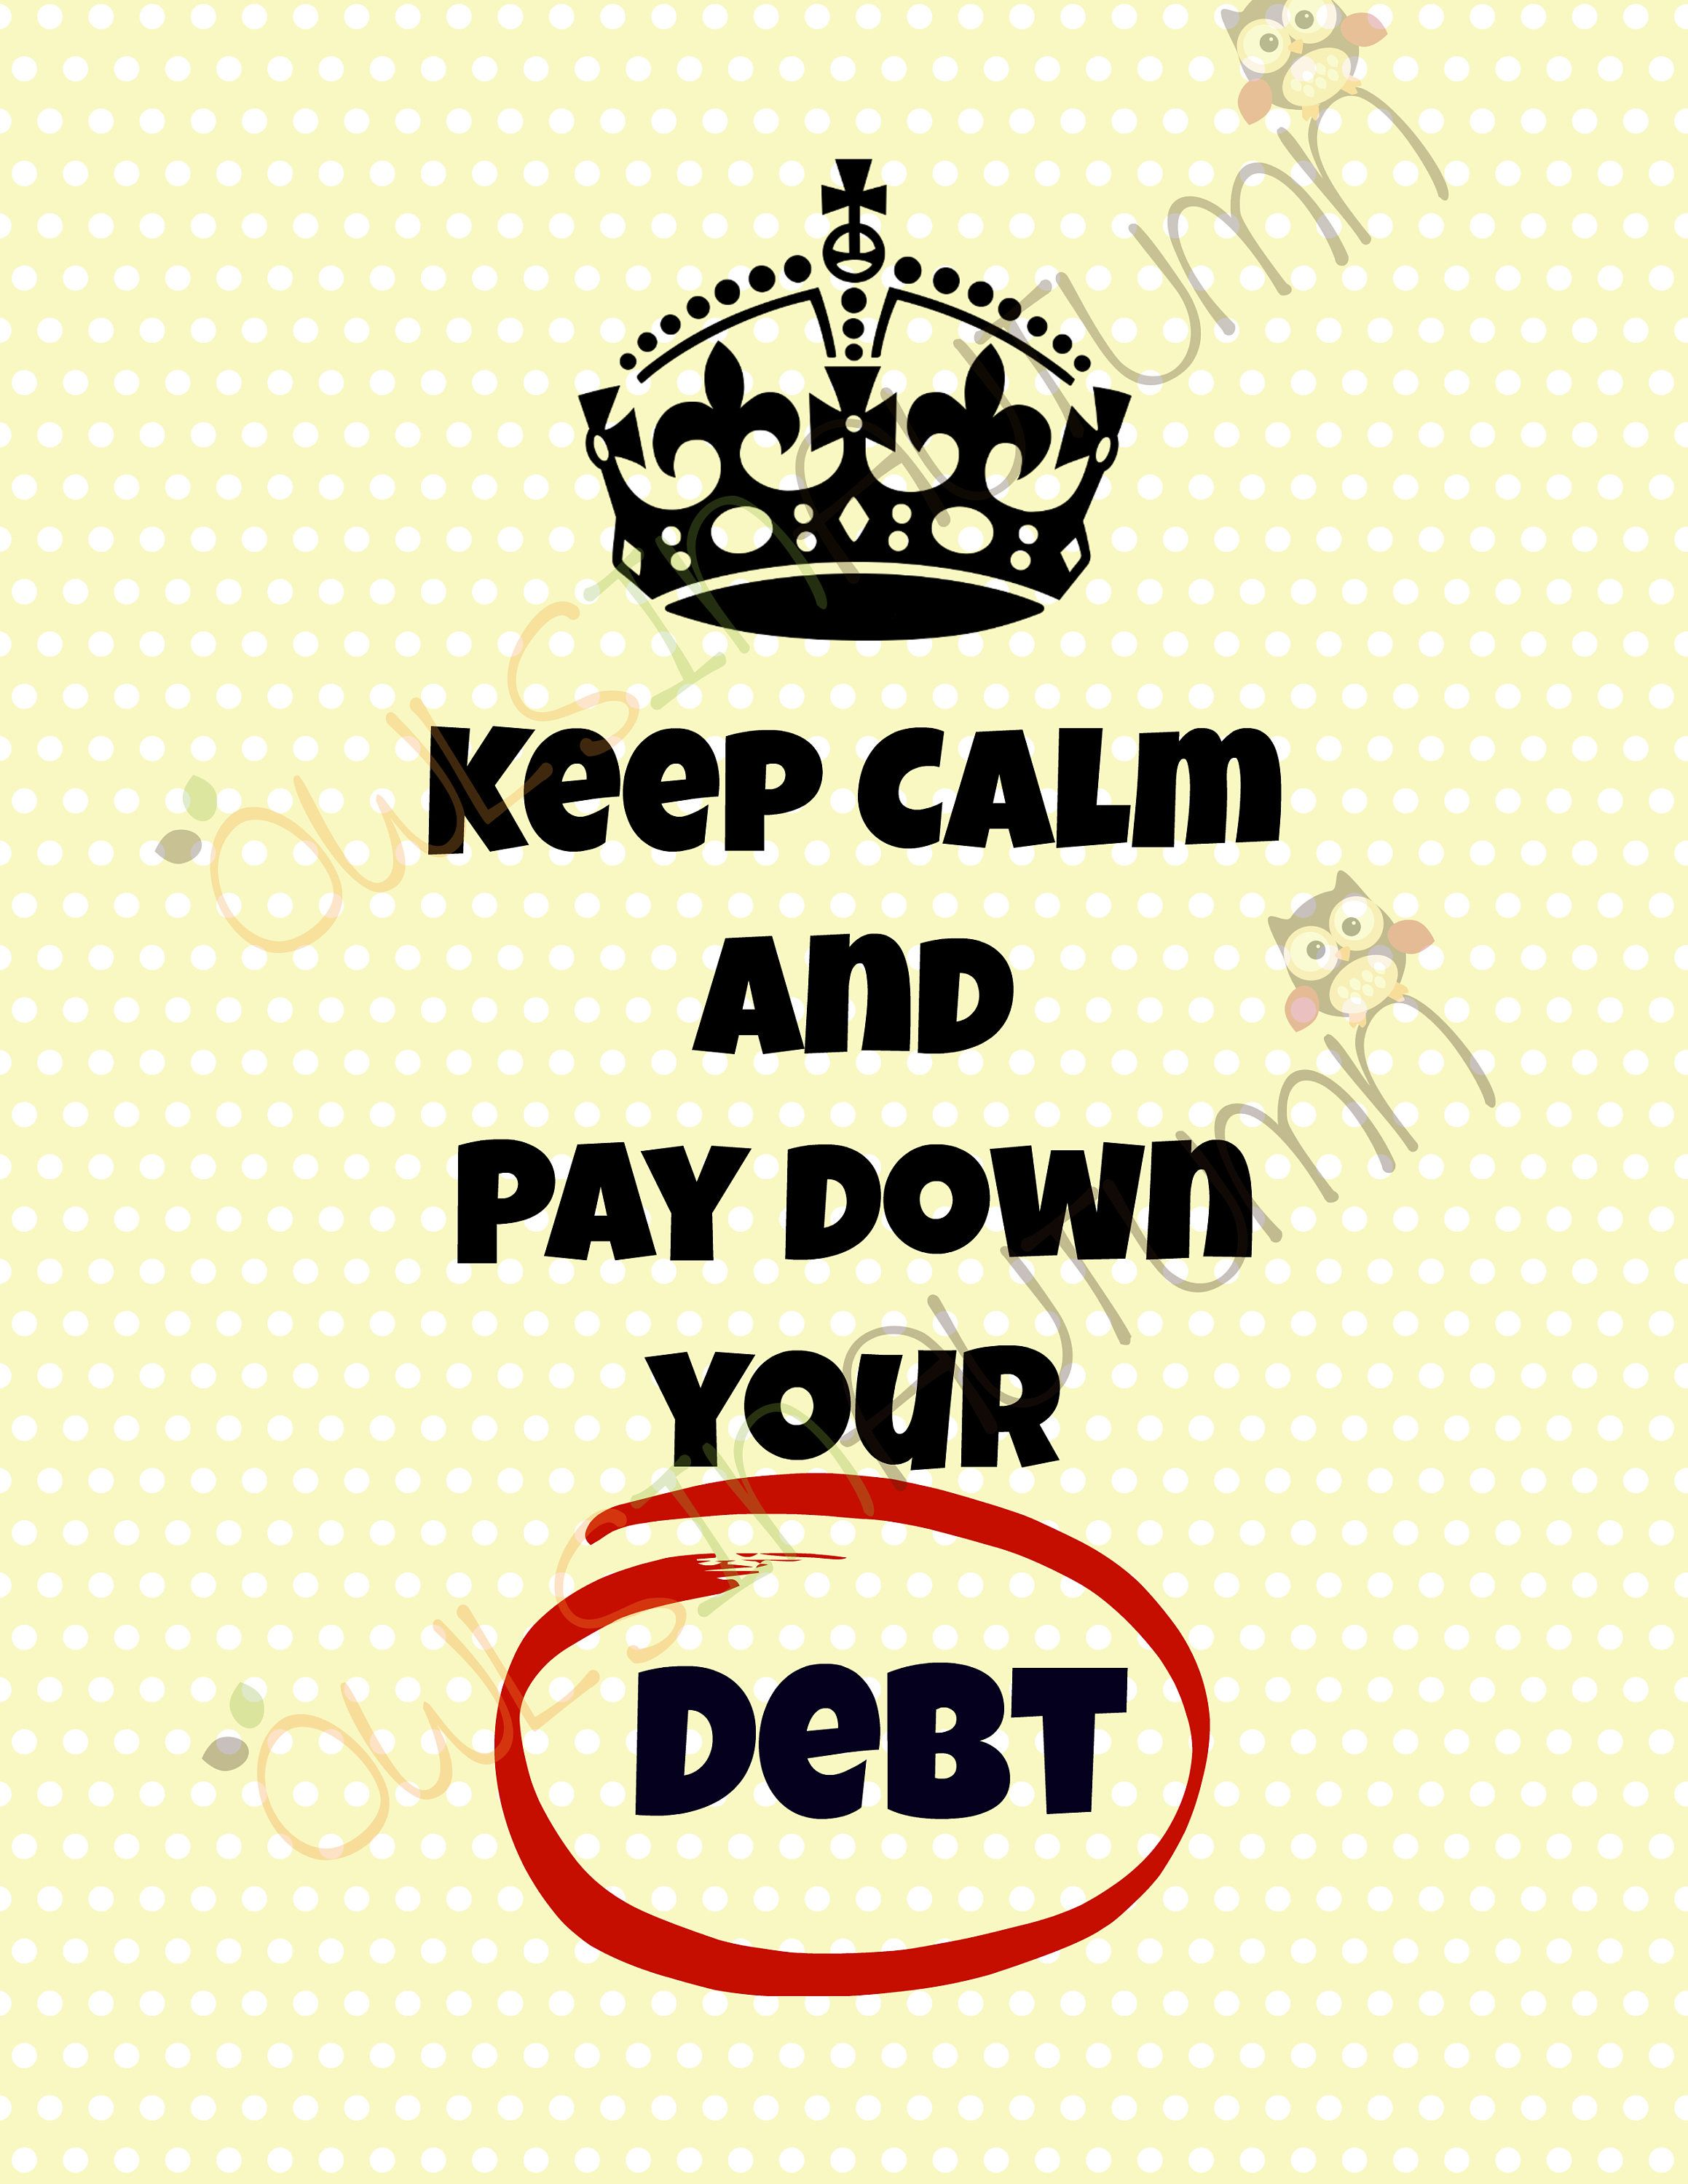 Keep Calm and Pay down your debt by owlsinautumn on Etsy